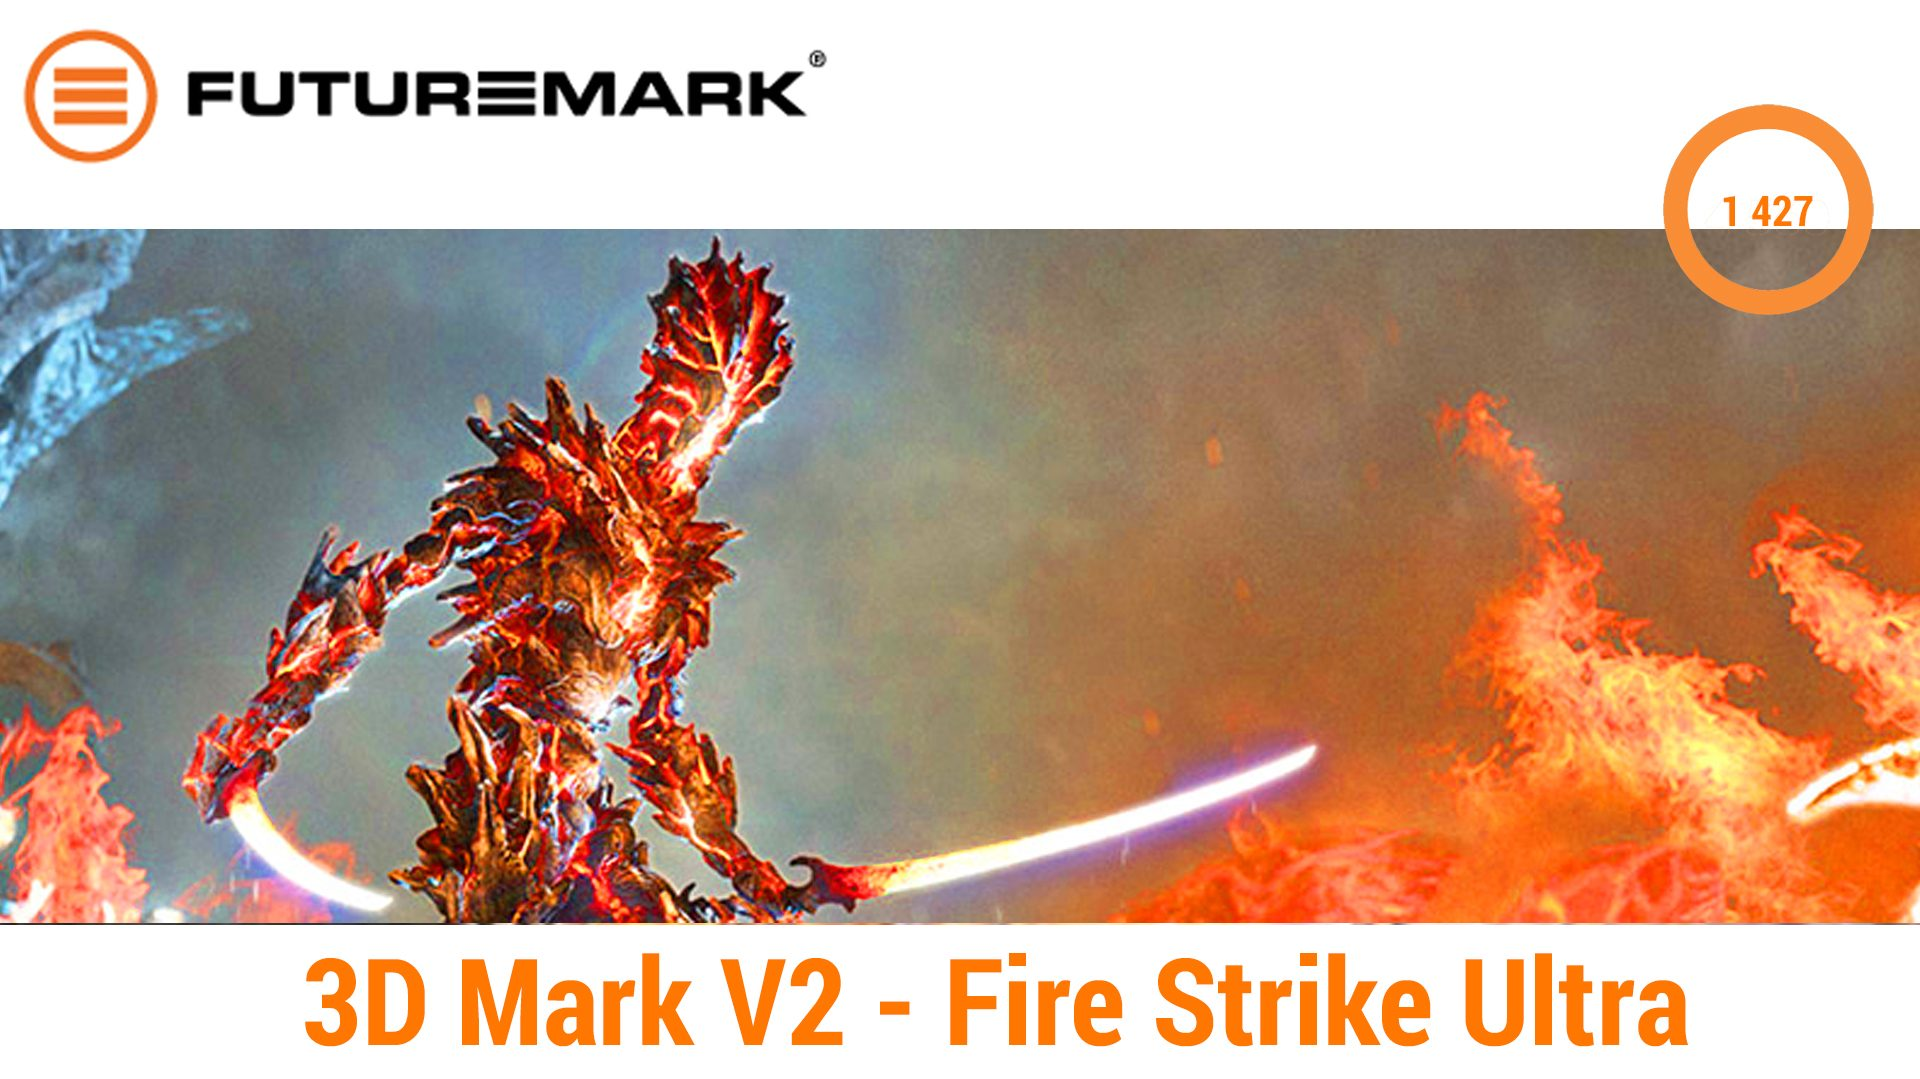 HP-Omen17-3DMark-Fire-Strike-Ultra